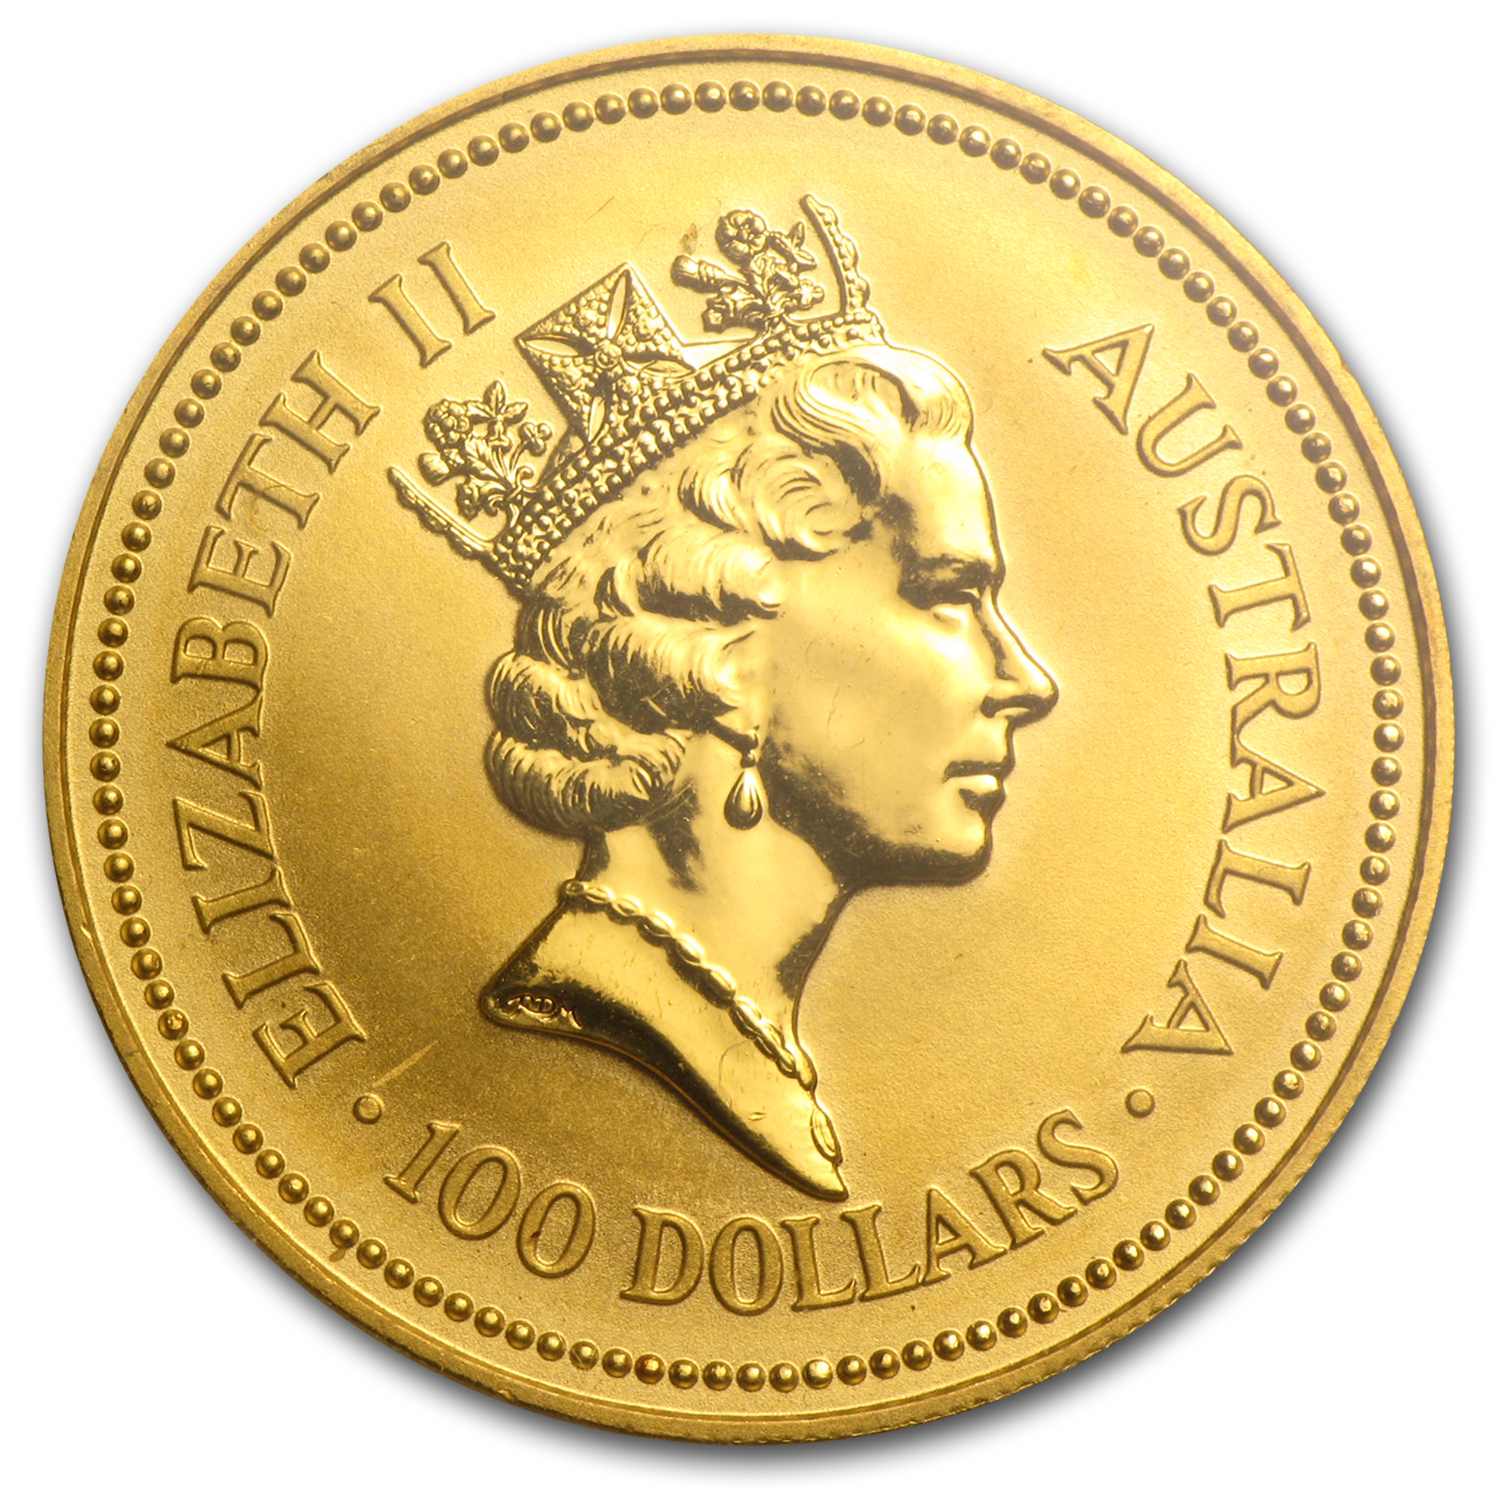 1992 1 oz Australian Gold Nugget